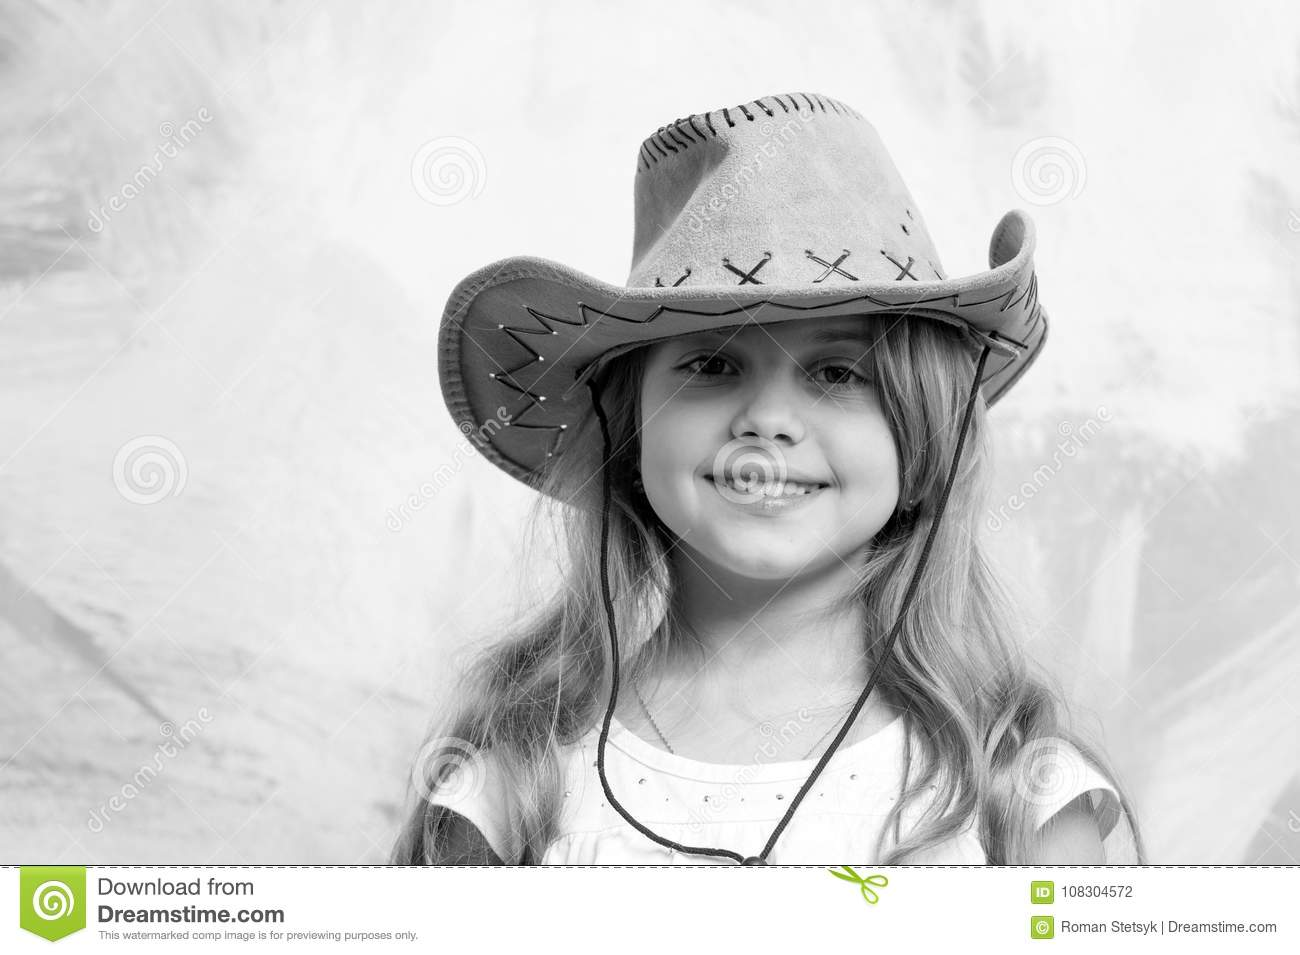 c12b1b38d1a46 Cowgirl. little girl in cowboy hat on colorful background